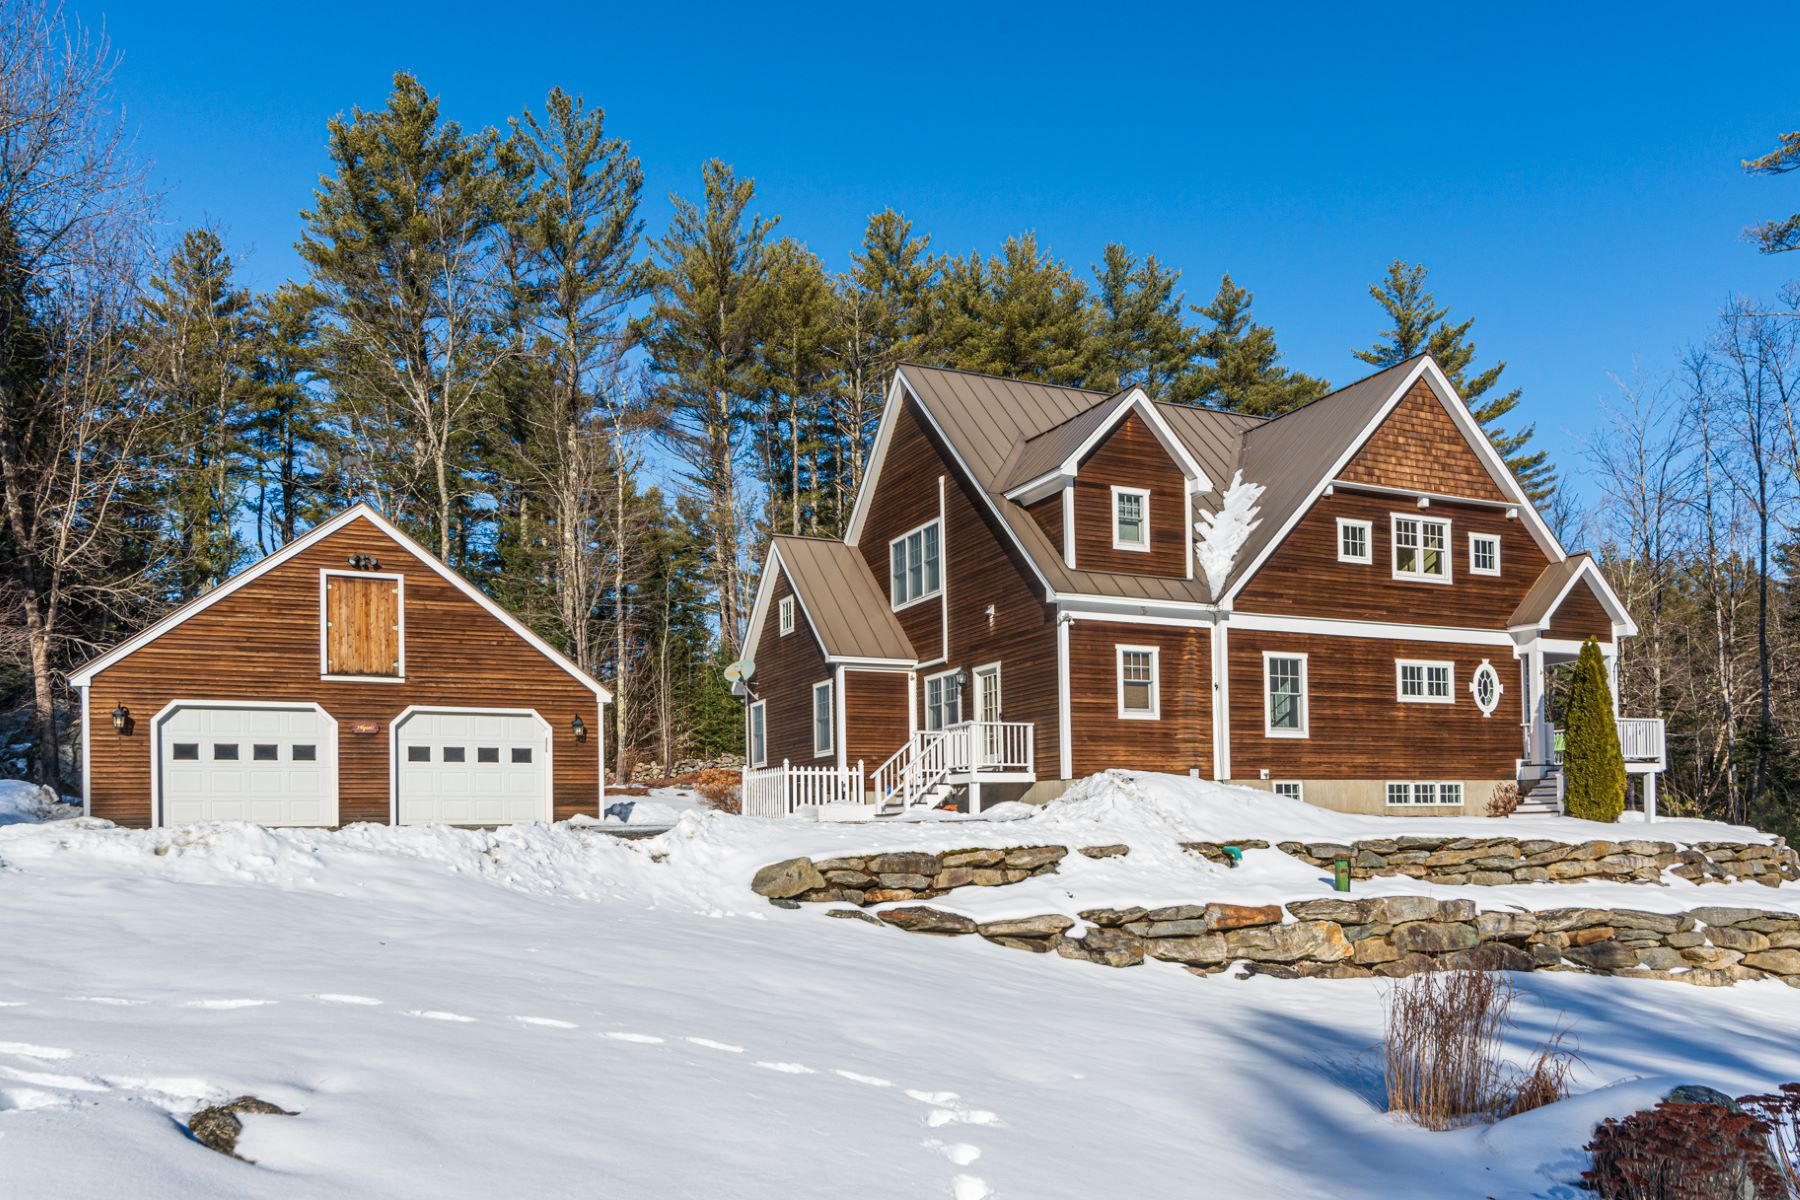 Single Family Homes for Sale at 30 Fieldstone Way, Londonderry 30 Fieldstone Way Londonderry, Vermont 05155 United States